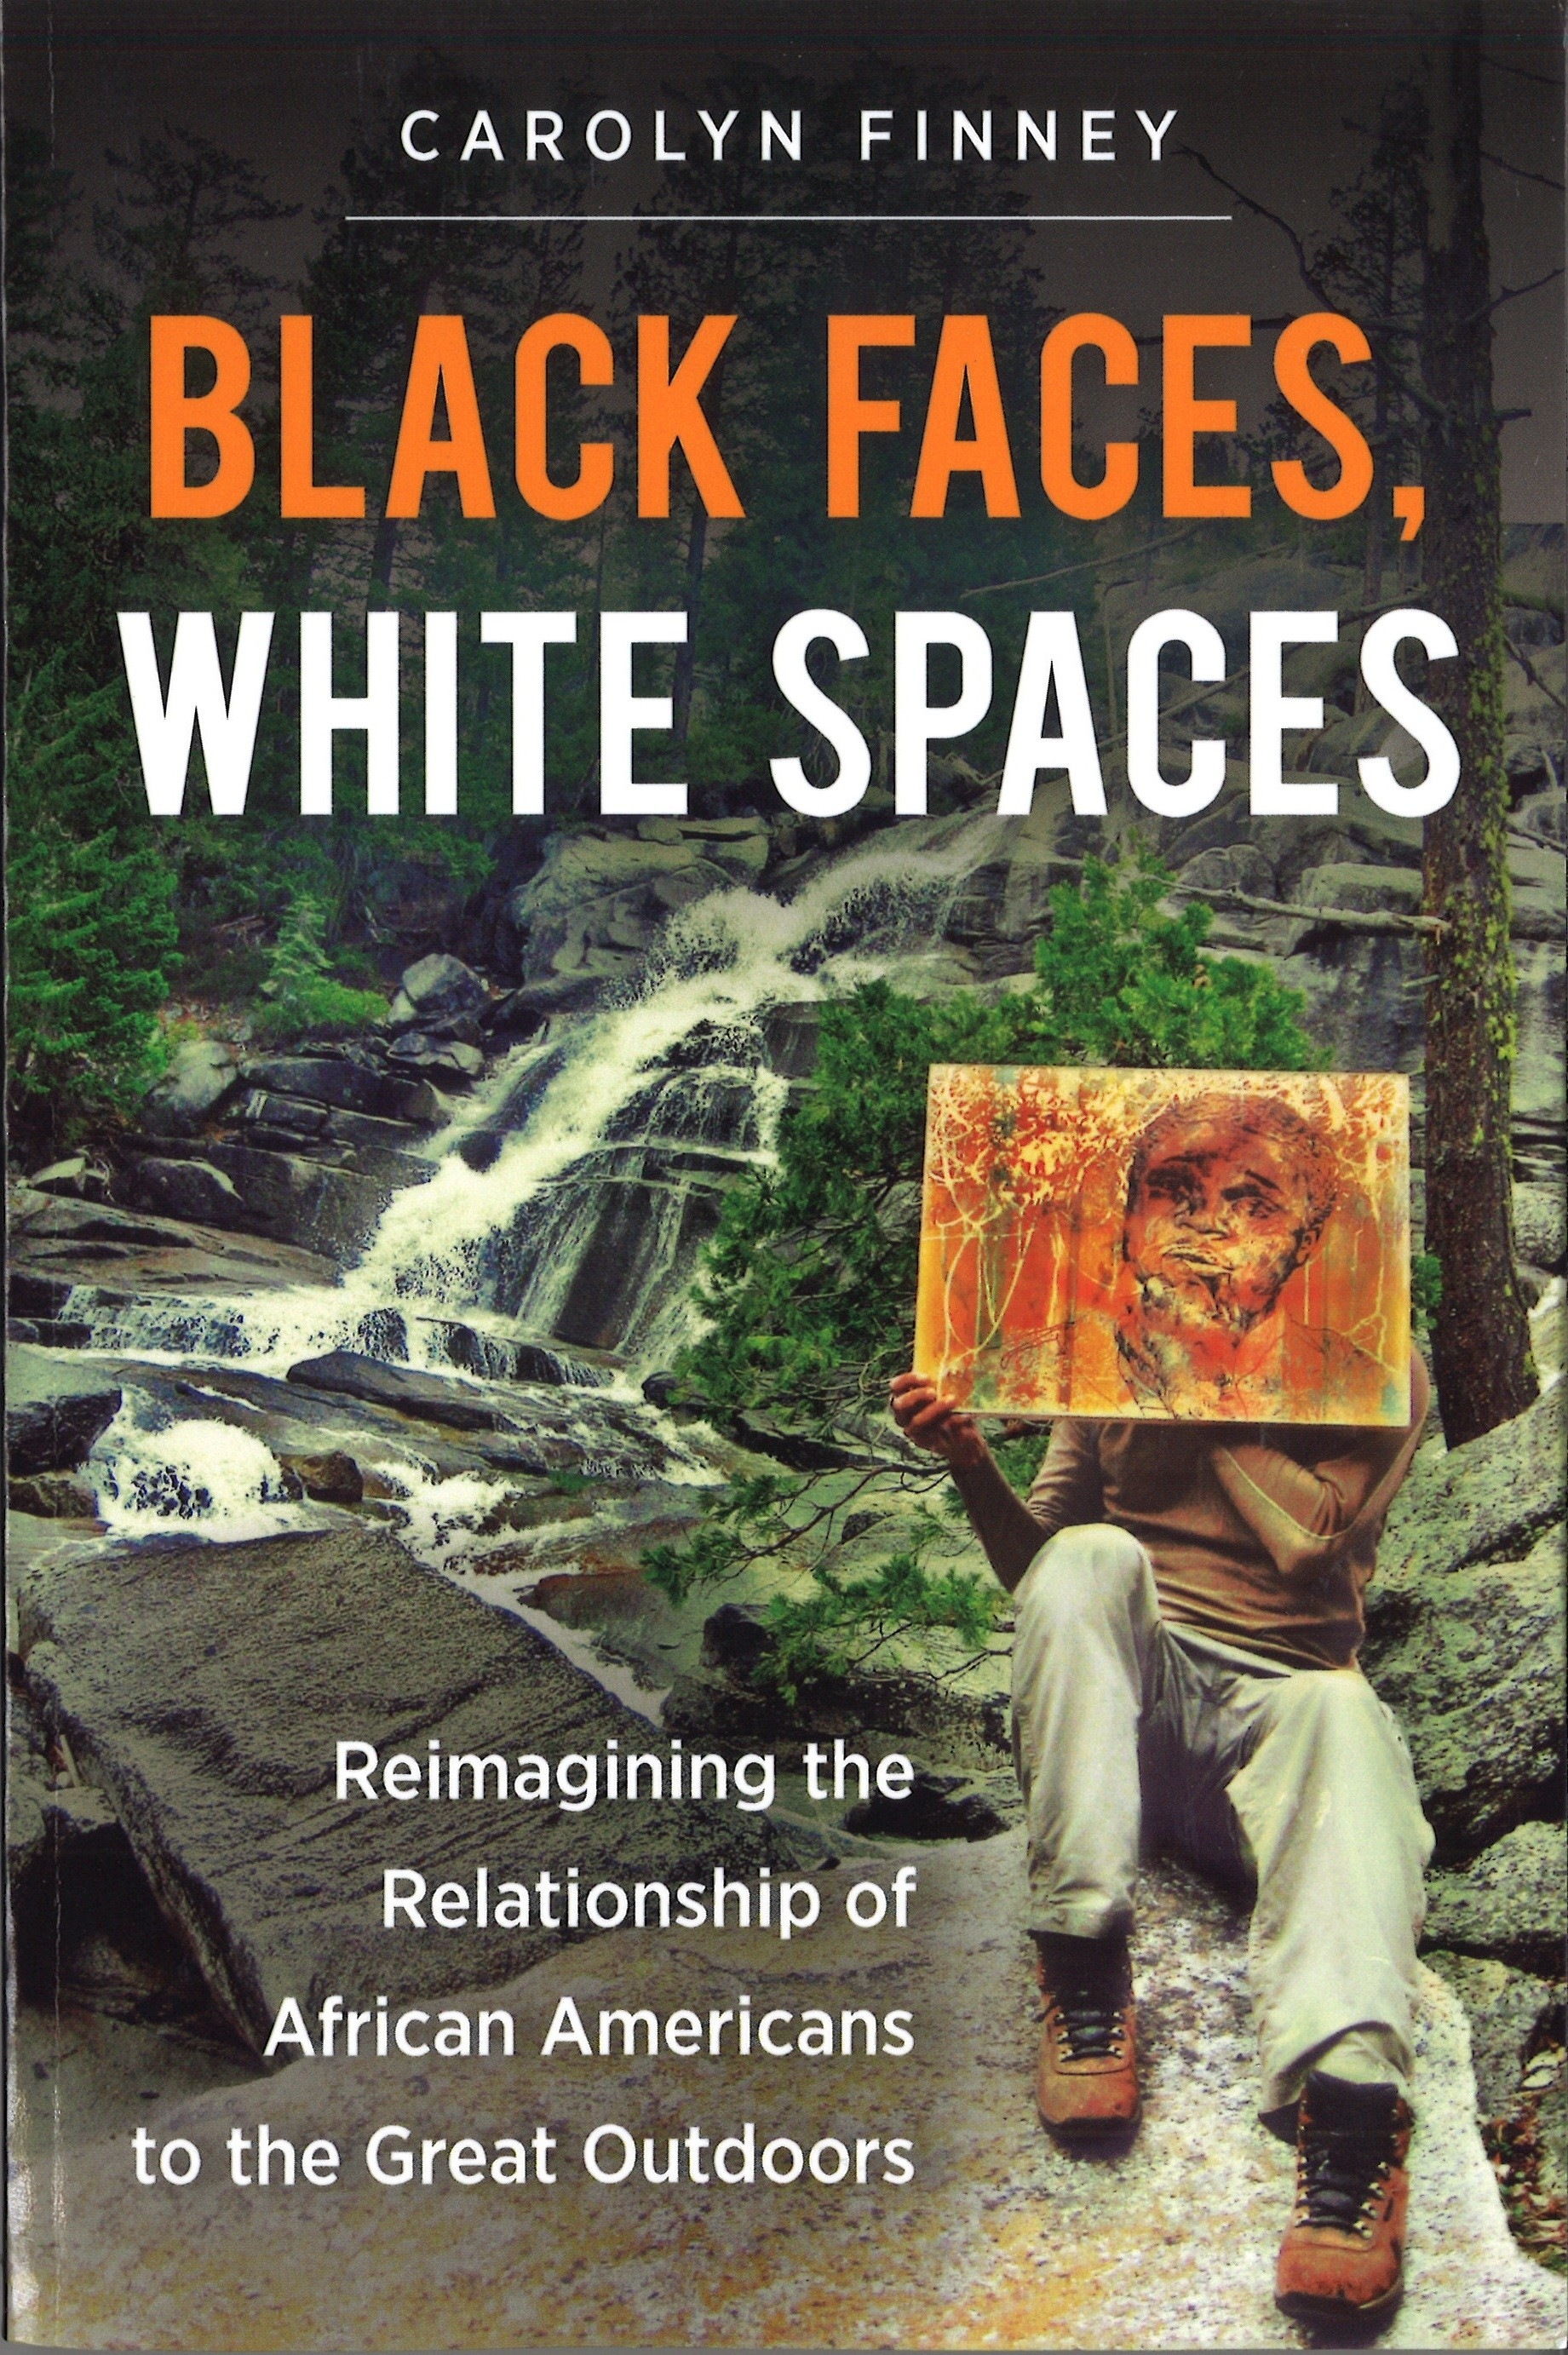 Black Faces, White Spaces: Reimagining the Relationship of African Americans to the Great Outdoors